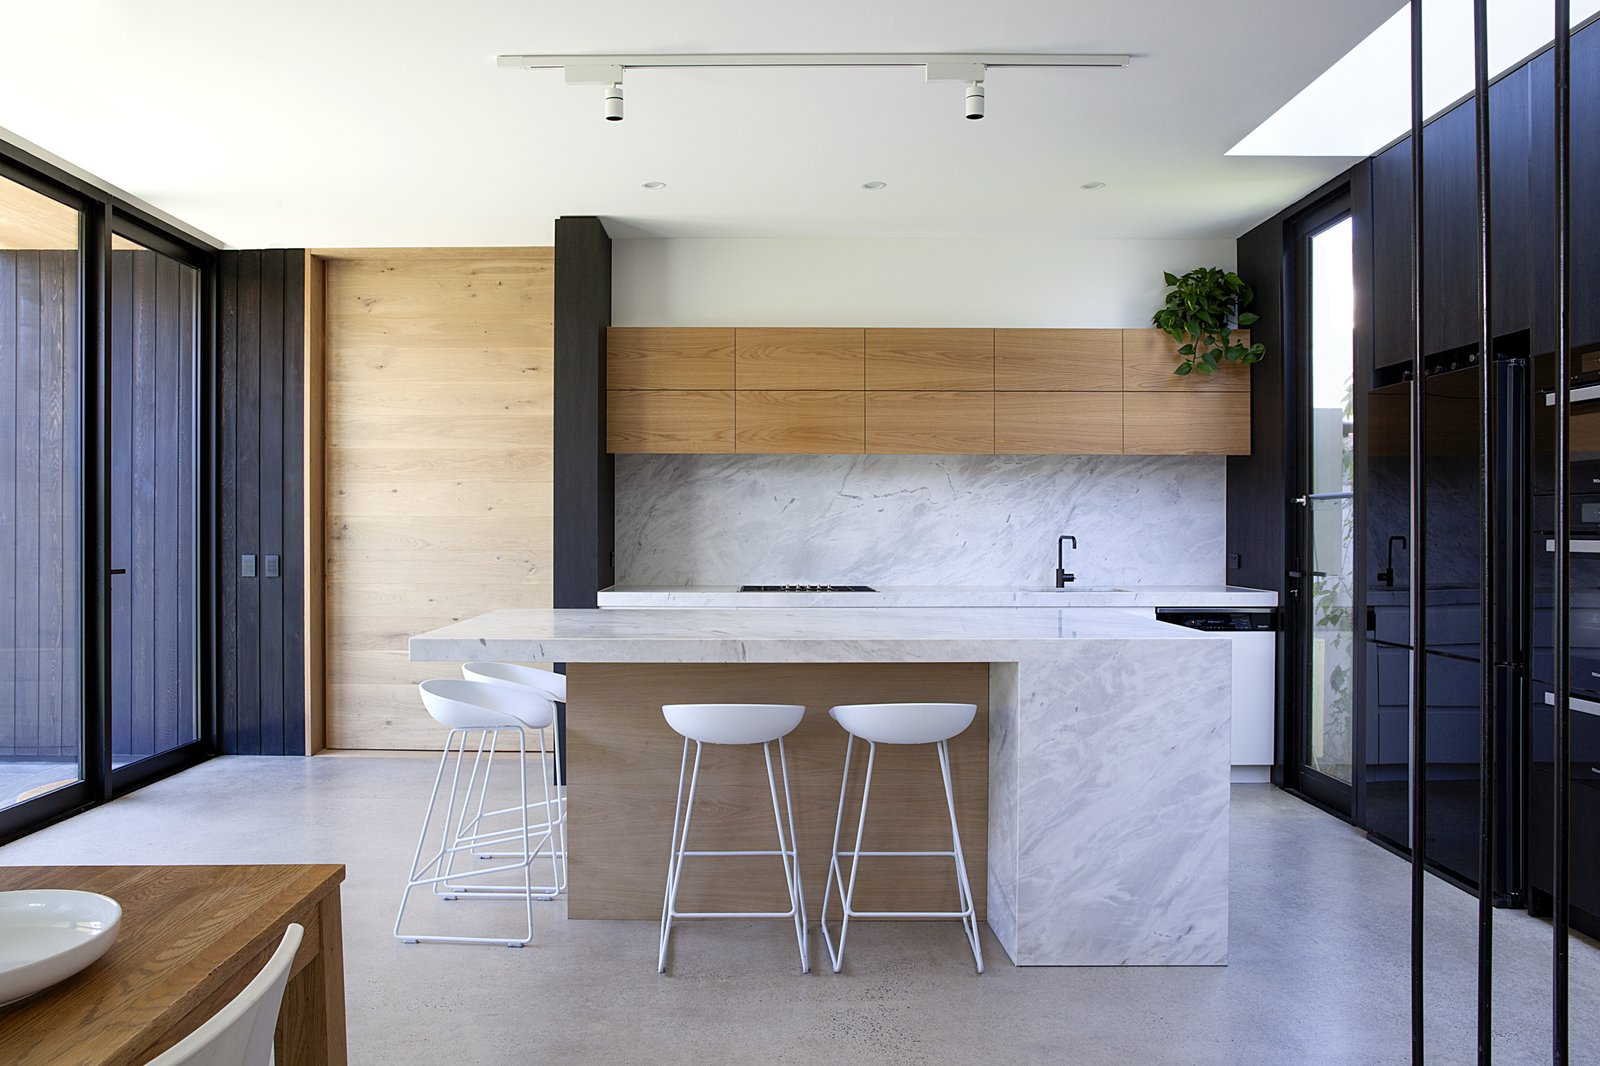 Kitchen, Dishwasher, Range Hood, Wall Oven, White, Undermount, Wood, Refrigerator, Track, Concrete, Marble, Microwave, Cooktops, Marble, and Recessed Thomas + Williams Architects sow simplicity with an artful combination of concrete, oak, steel, and prefabricated panels in Port Melbourne, Victoria. Oak and concrete meet a substantial marble countertop and backsplash in the kitchen.  Best Kitchen Microwave Range Hood Undermount Wall Oven Photos from A Streamlined Addition Serves a Family of Four in Australia